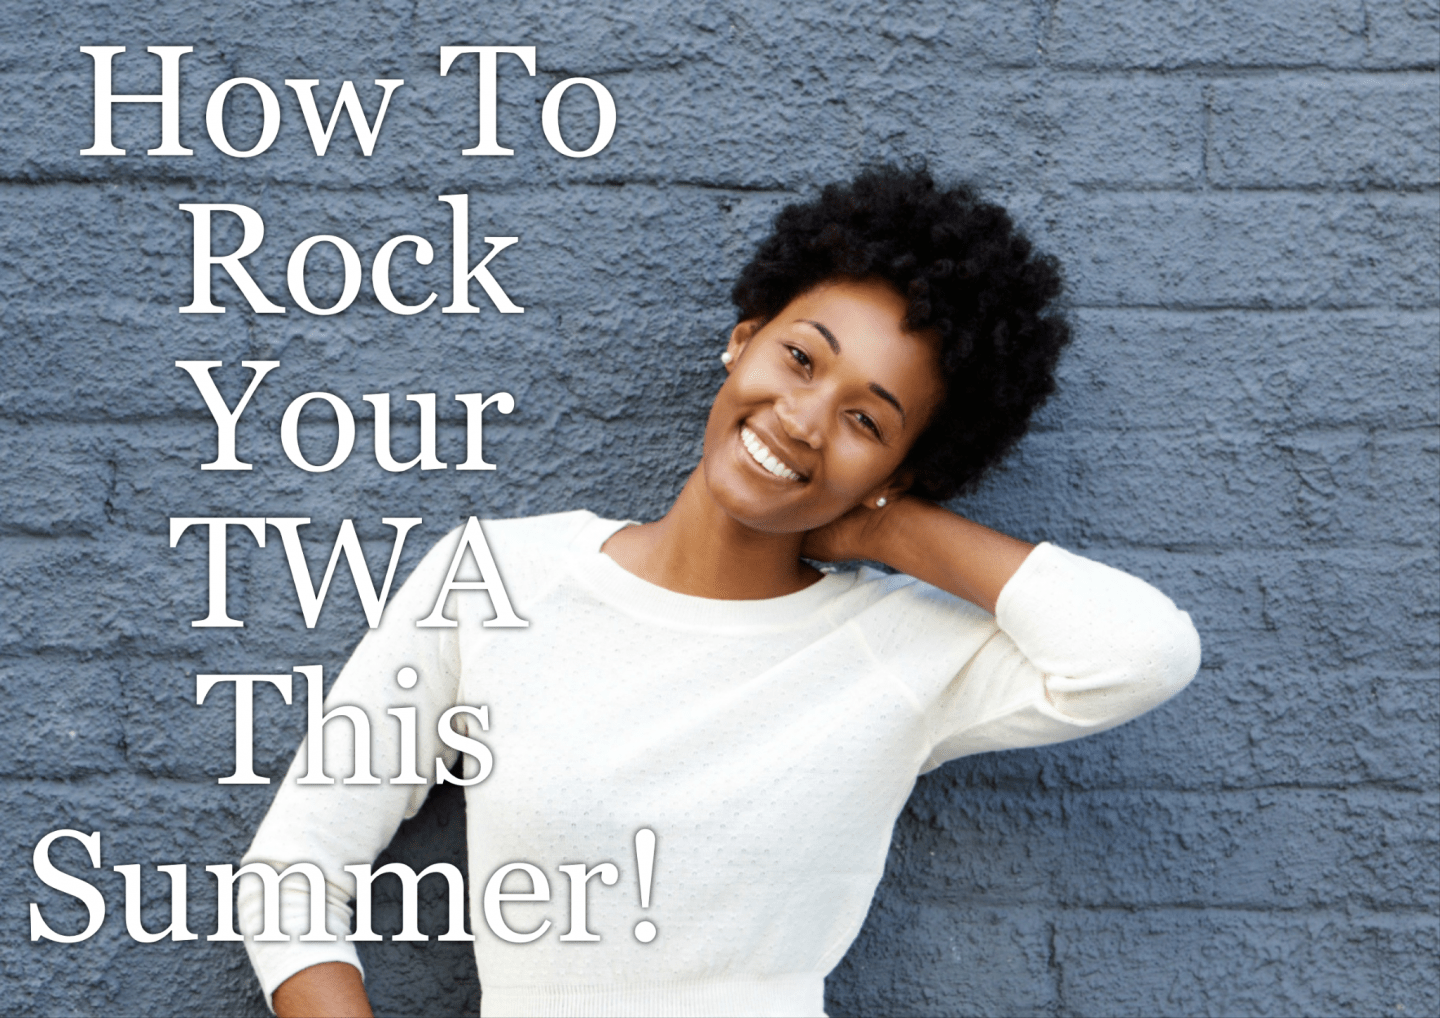 How to spruce up your summer with a fabulous TWA - teeny weeny afro. The TWA is almost synonymous with natural hair or going natural.